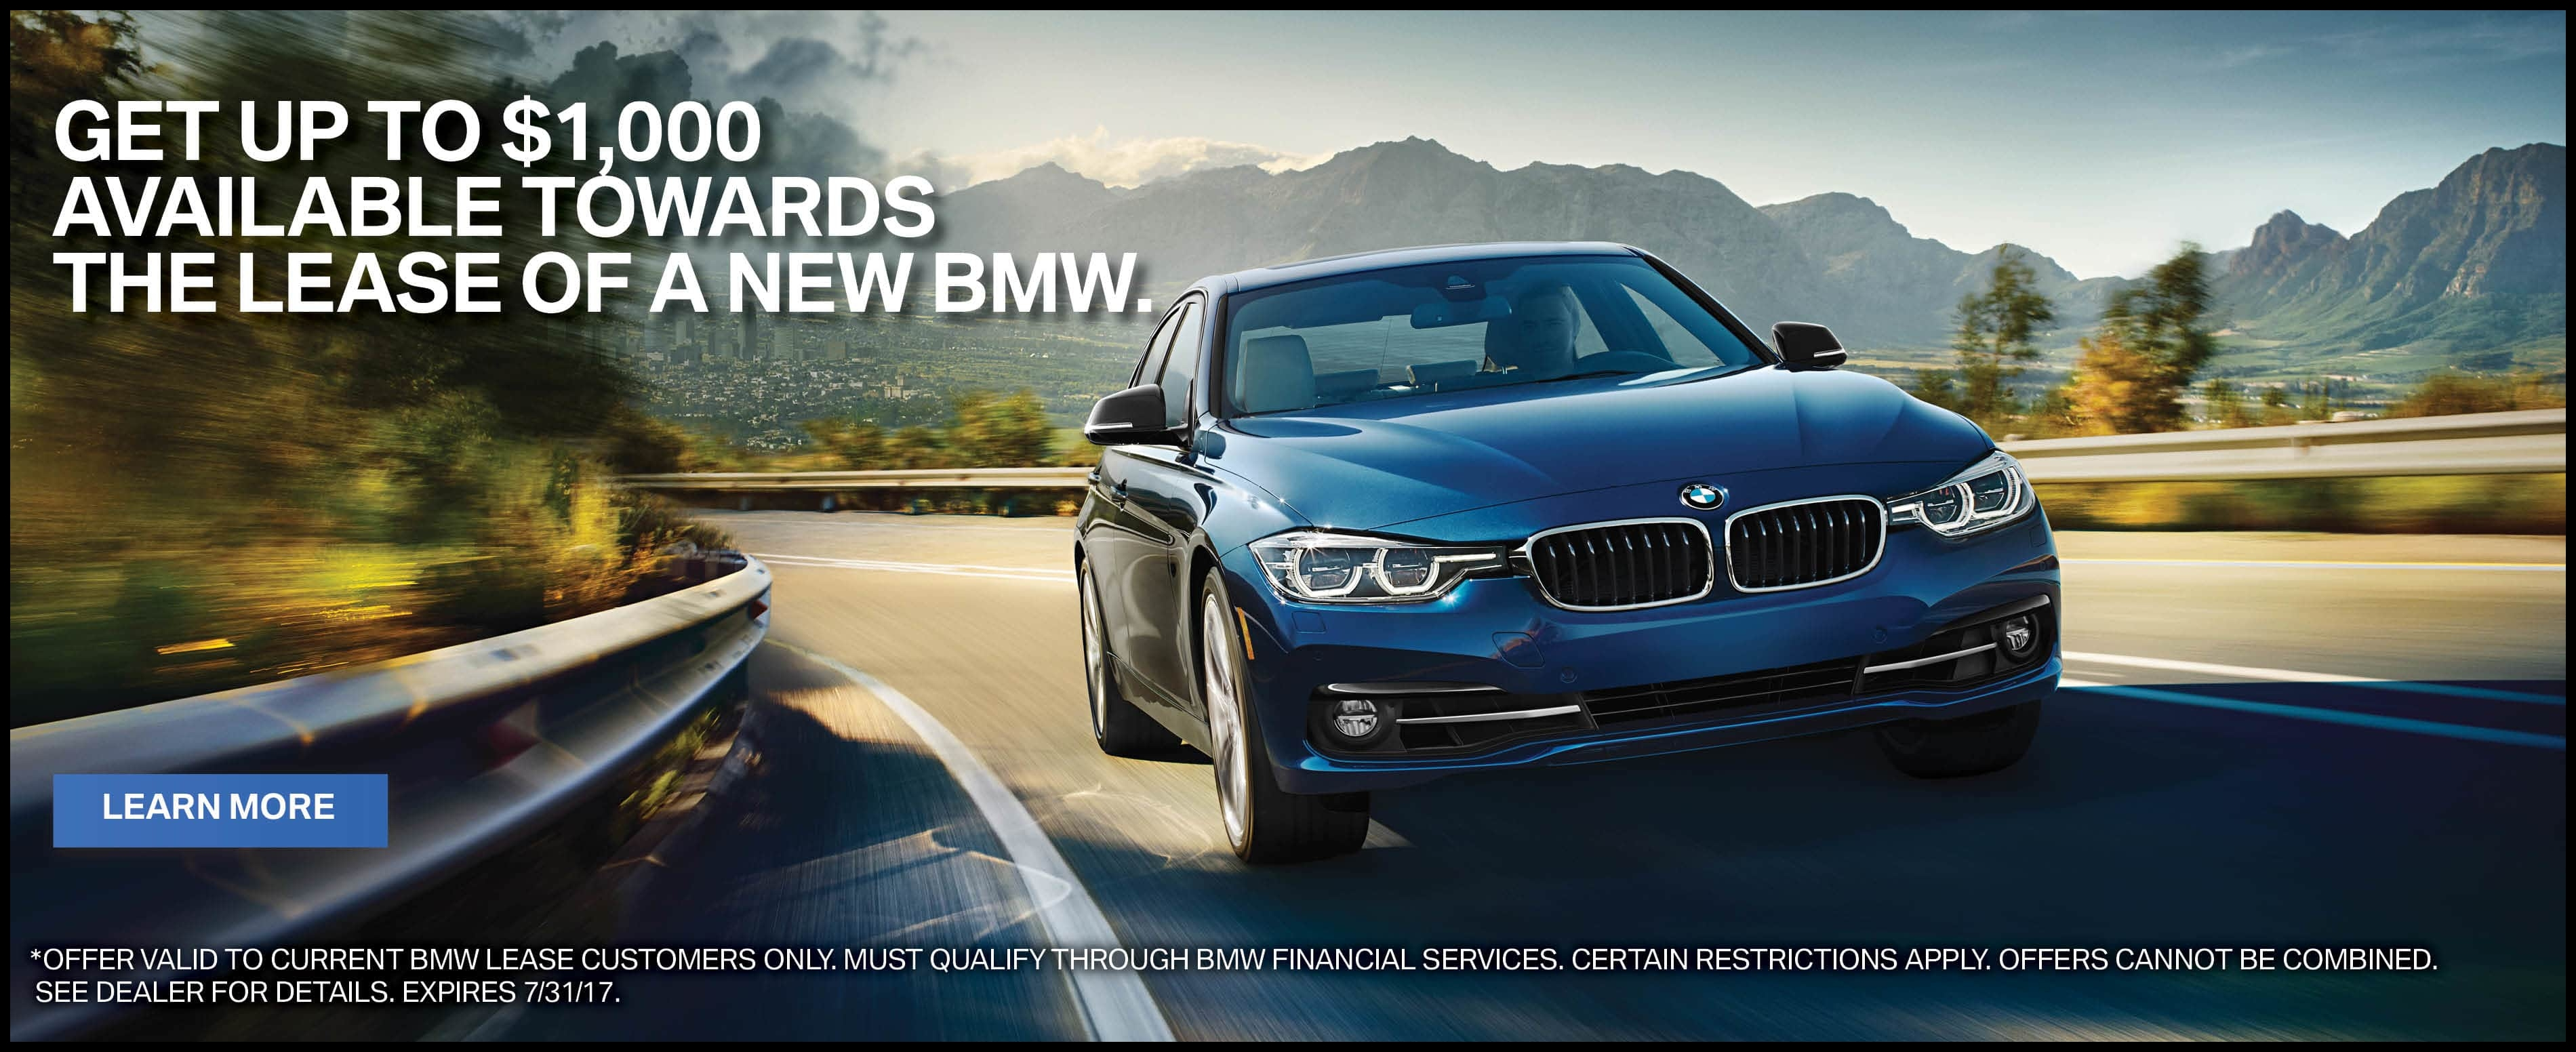 BMW Financial Services Lease Loyalty Promotion